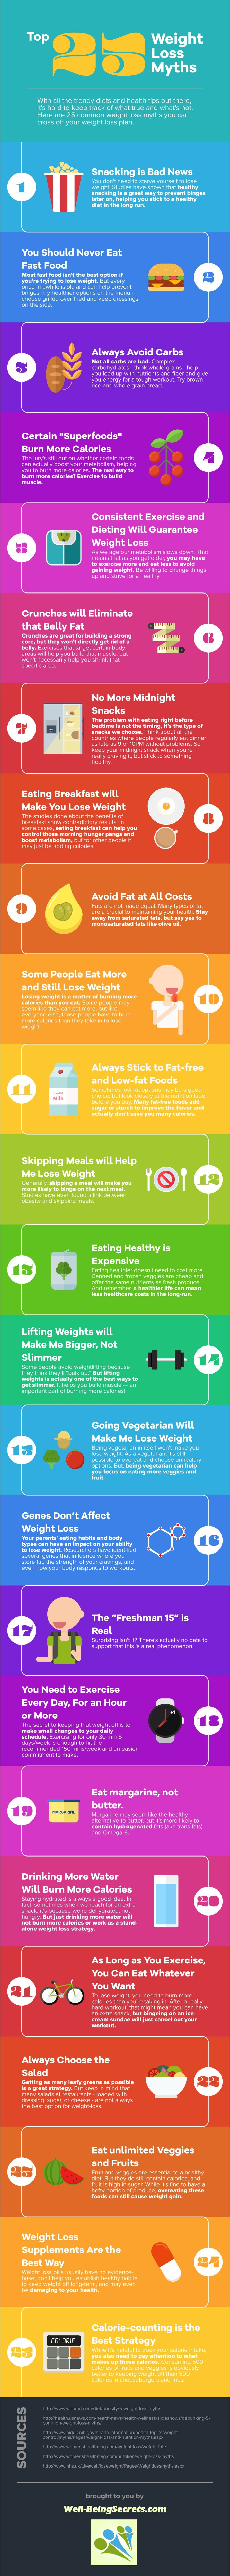 25 Weight Loss Myths Debunked